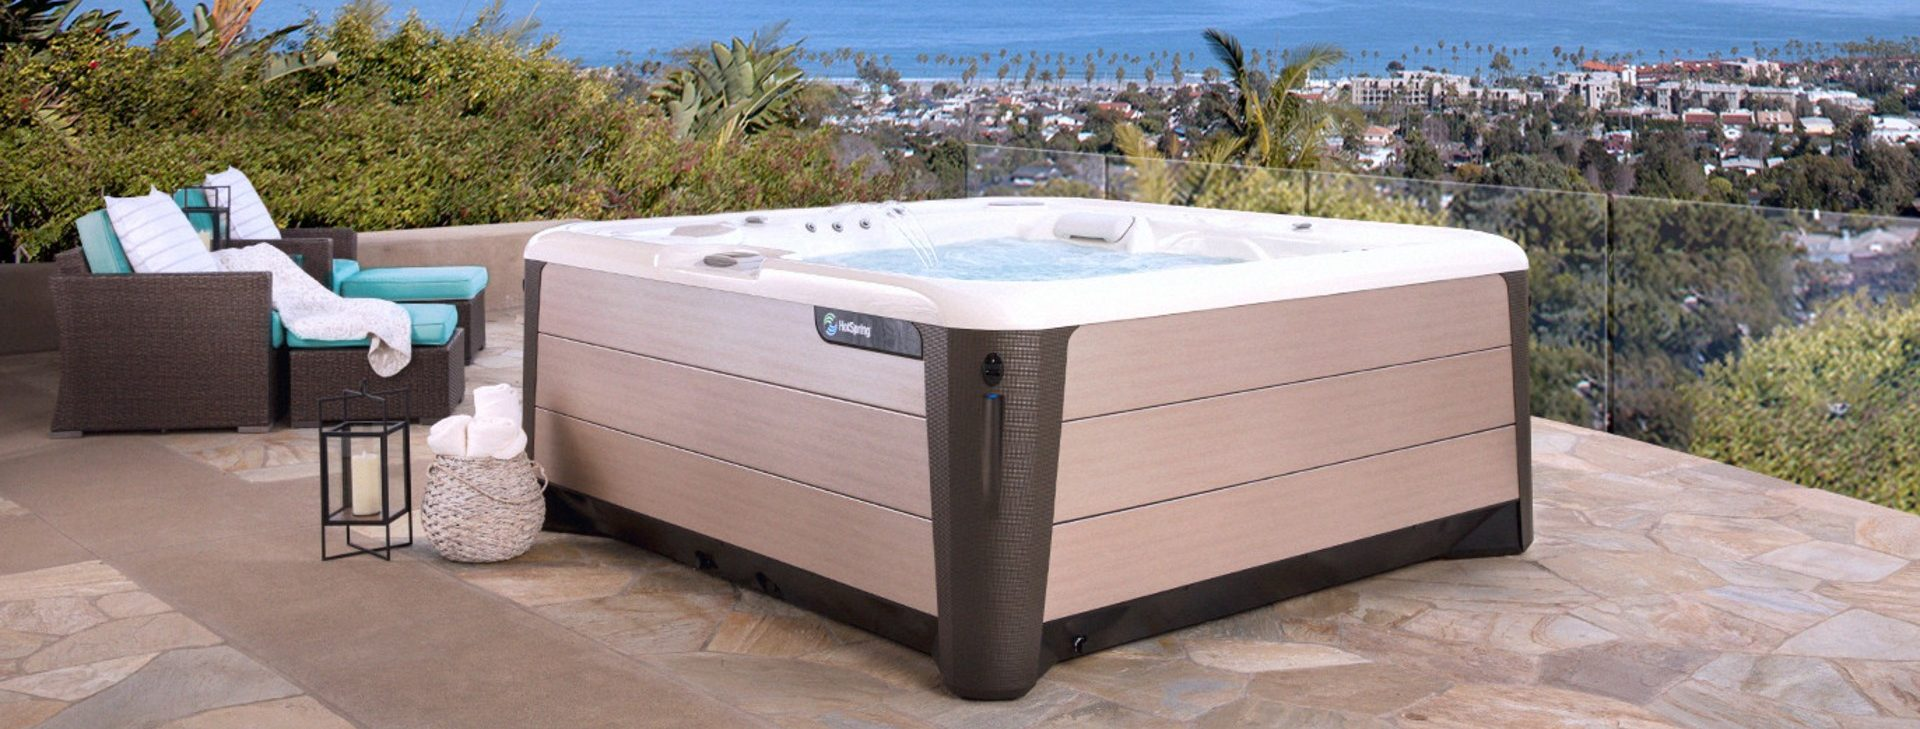 Am I Buying a Hot Tub from a Dependable Dealer?